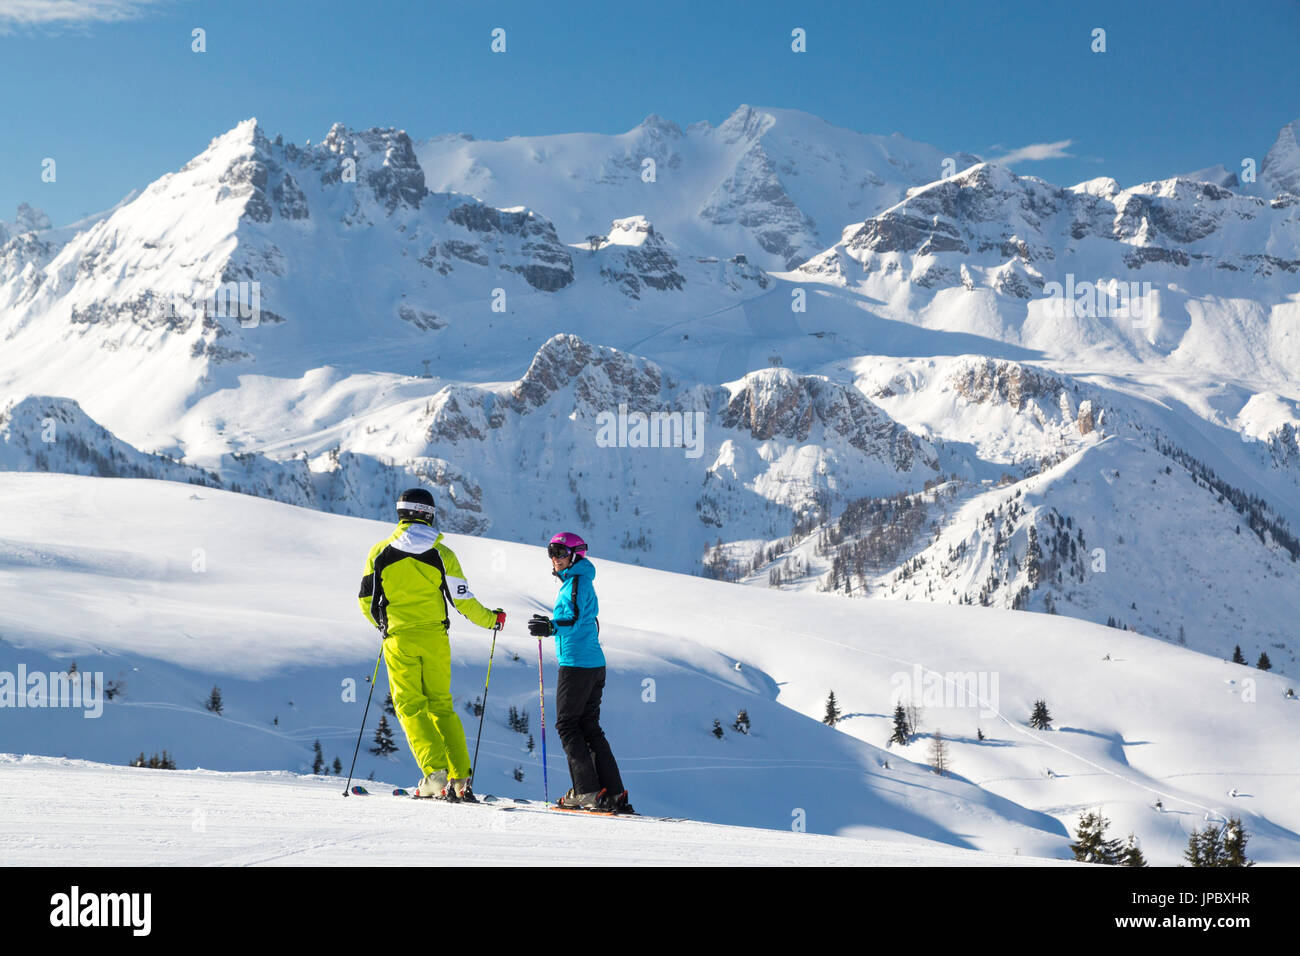 Skiers on ski slopes of Cherz framed by the high peaks of Marmolada and Portavescovo Arabba Dolomites Belluno Veneto Italy Europe - Stock Image